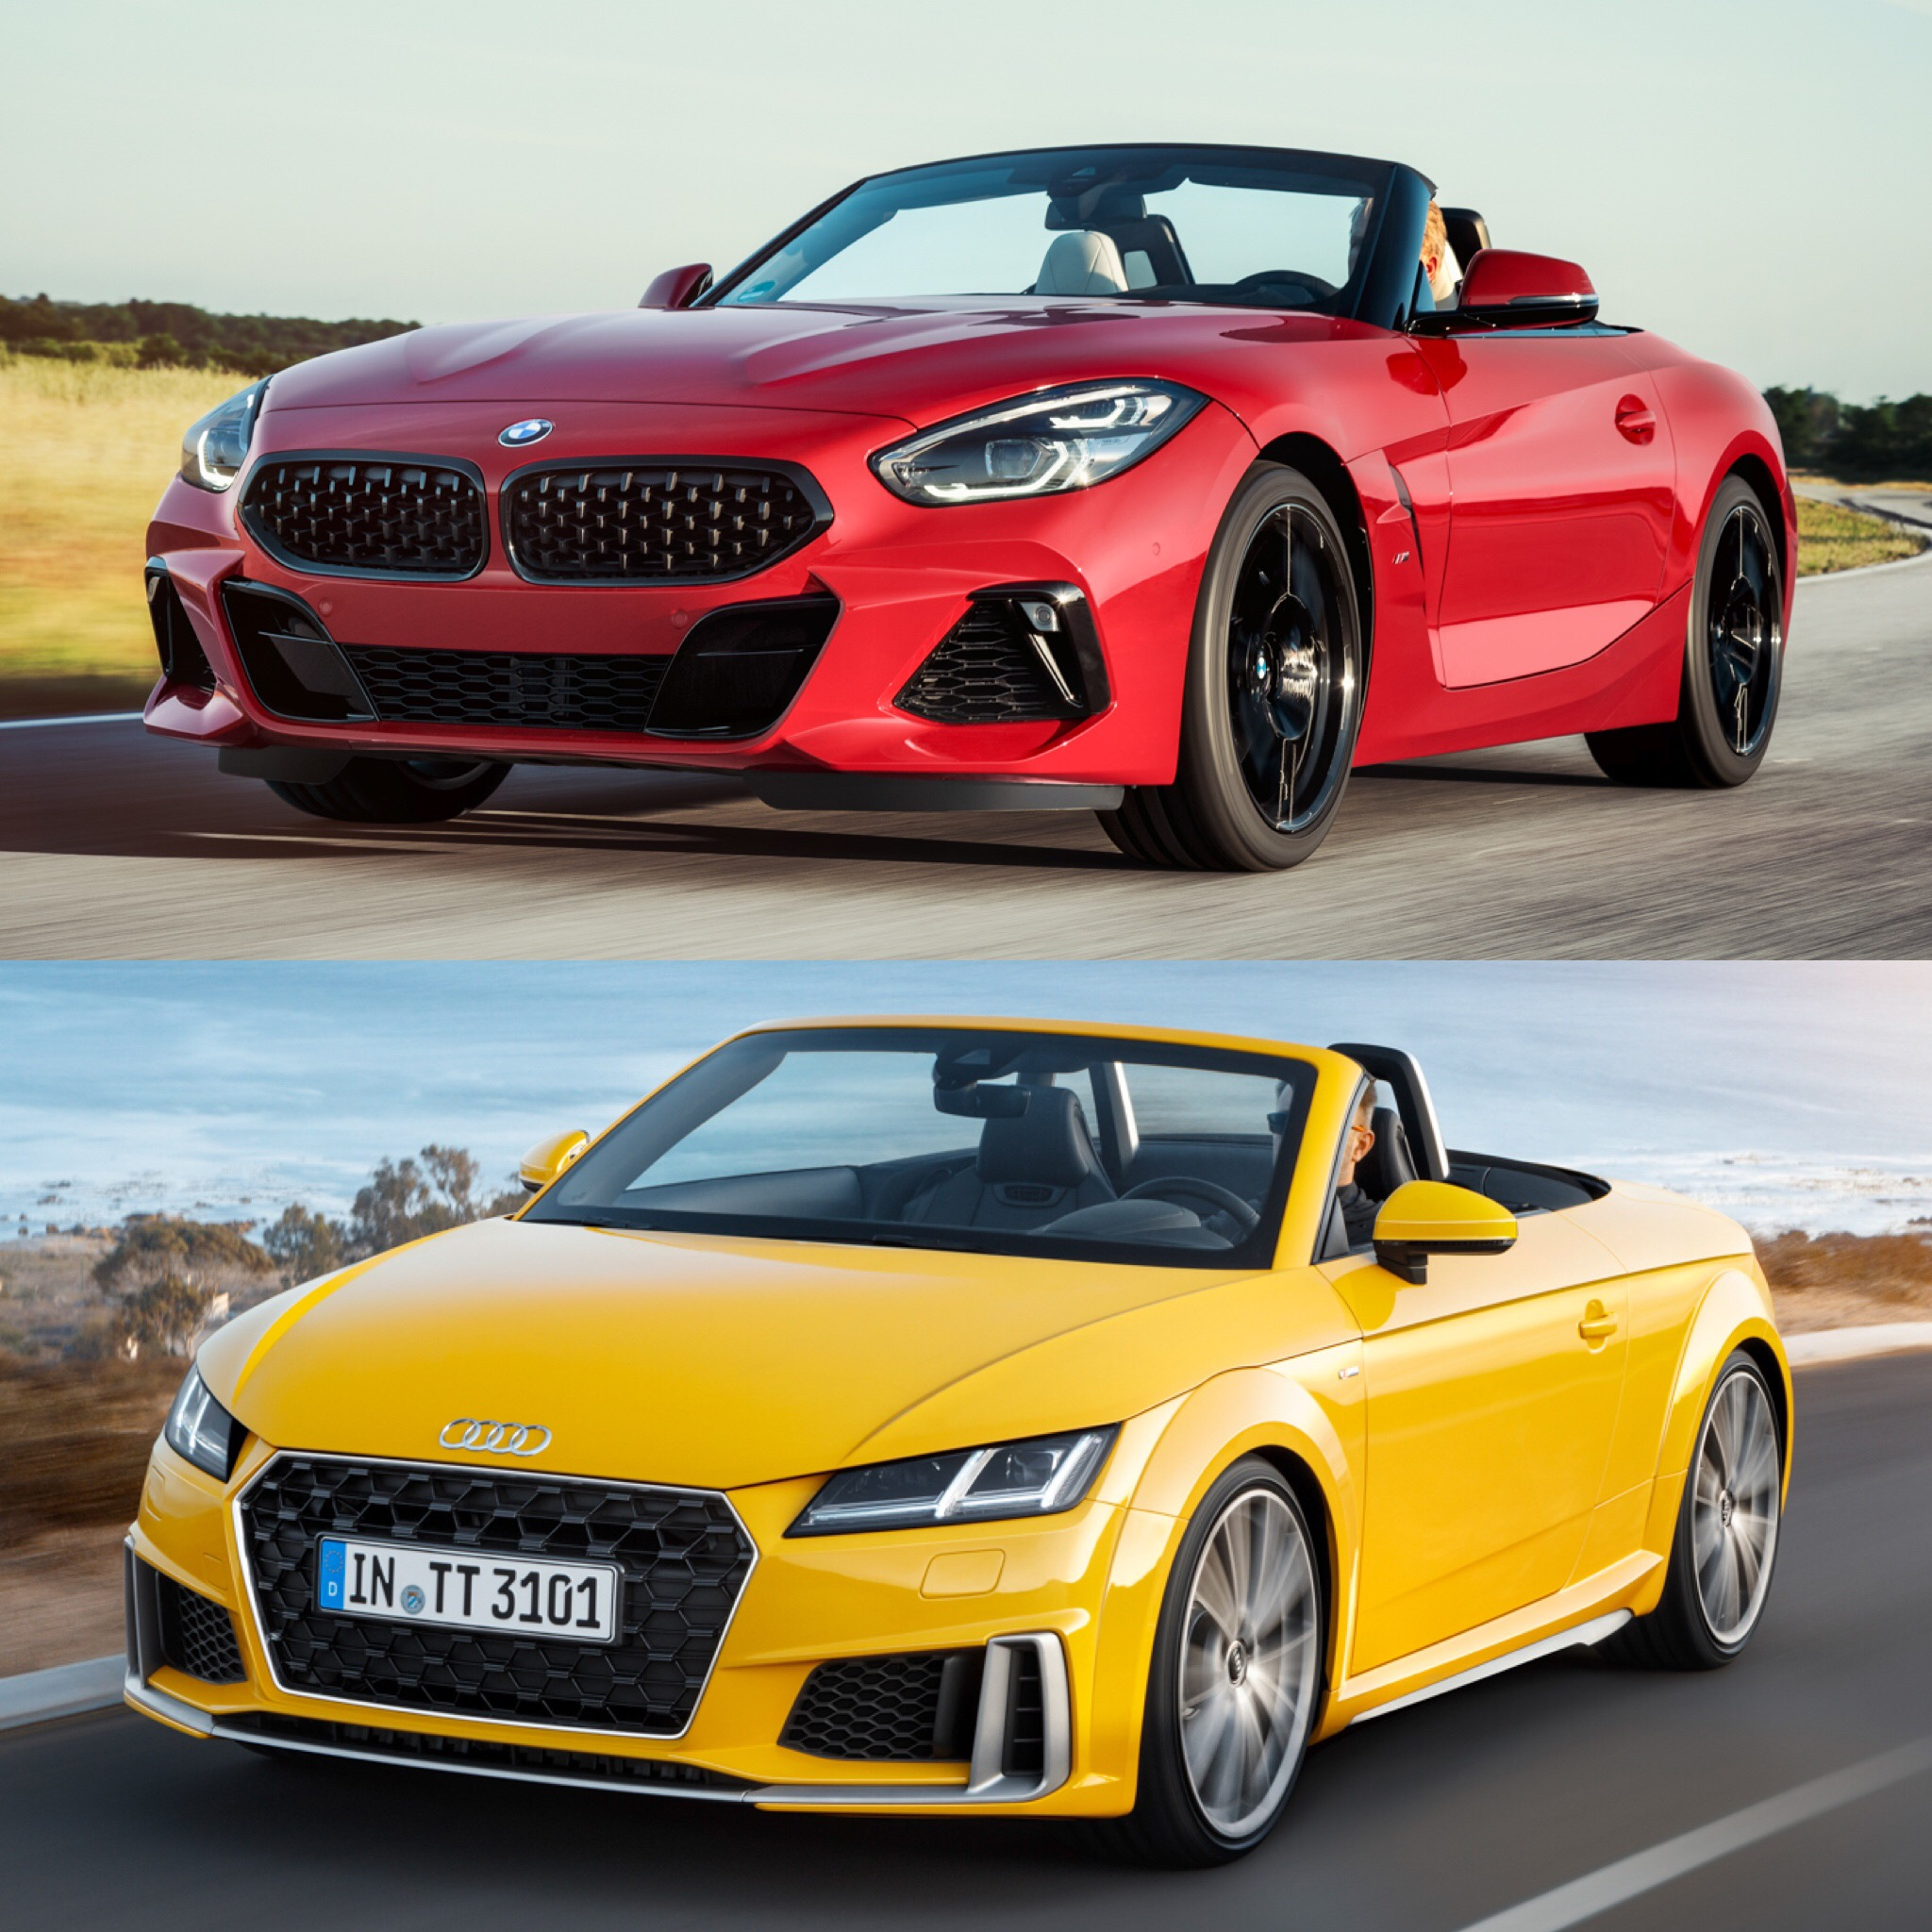 Bmw Z4 Convertible Price: Photo Comparison: BMW Z4 M40i Vs Audi TT Roadster